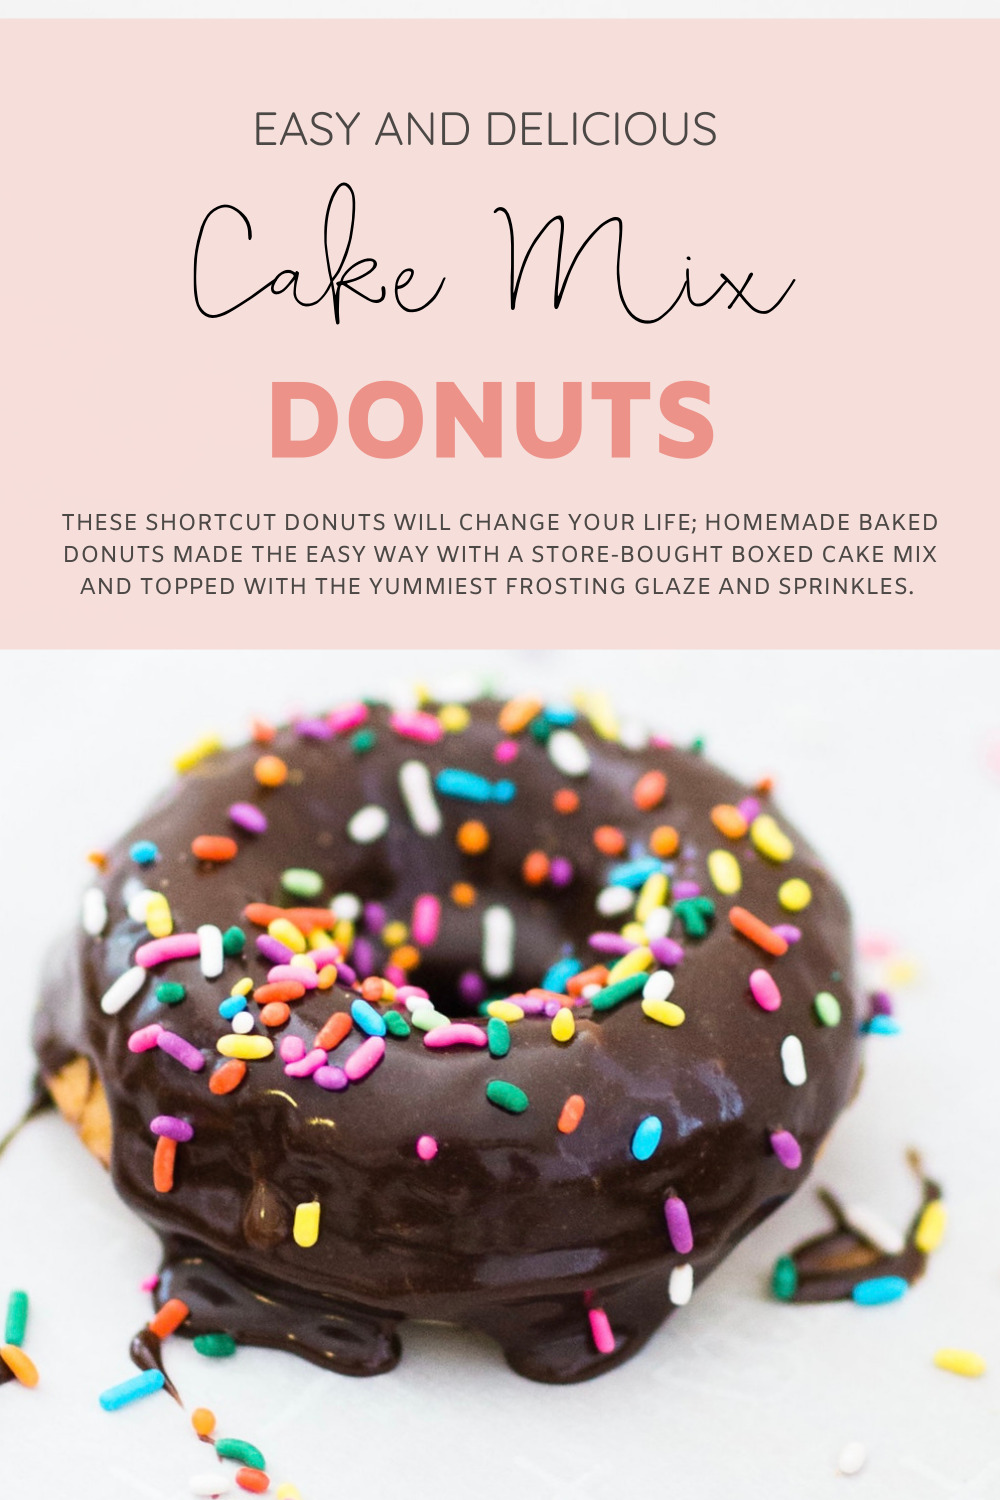 These shortcut donuts will change your life; homemade baked donuts made the easy way with a store-bought boxed cake mix and topped with the yummiest frosting glaze and sprinkles. Including our favorite simple frosting hack! | @glitterinclexi | GLITTERINC.COM